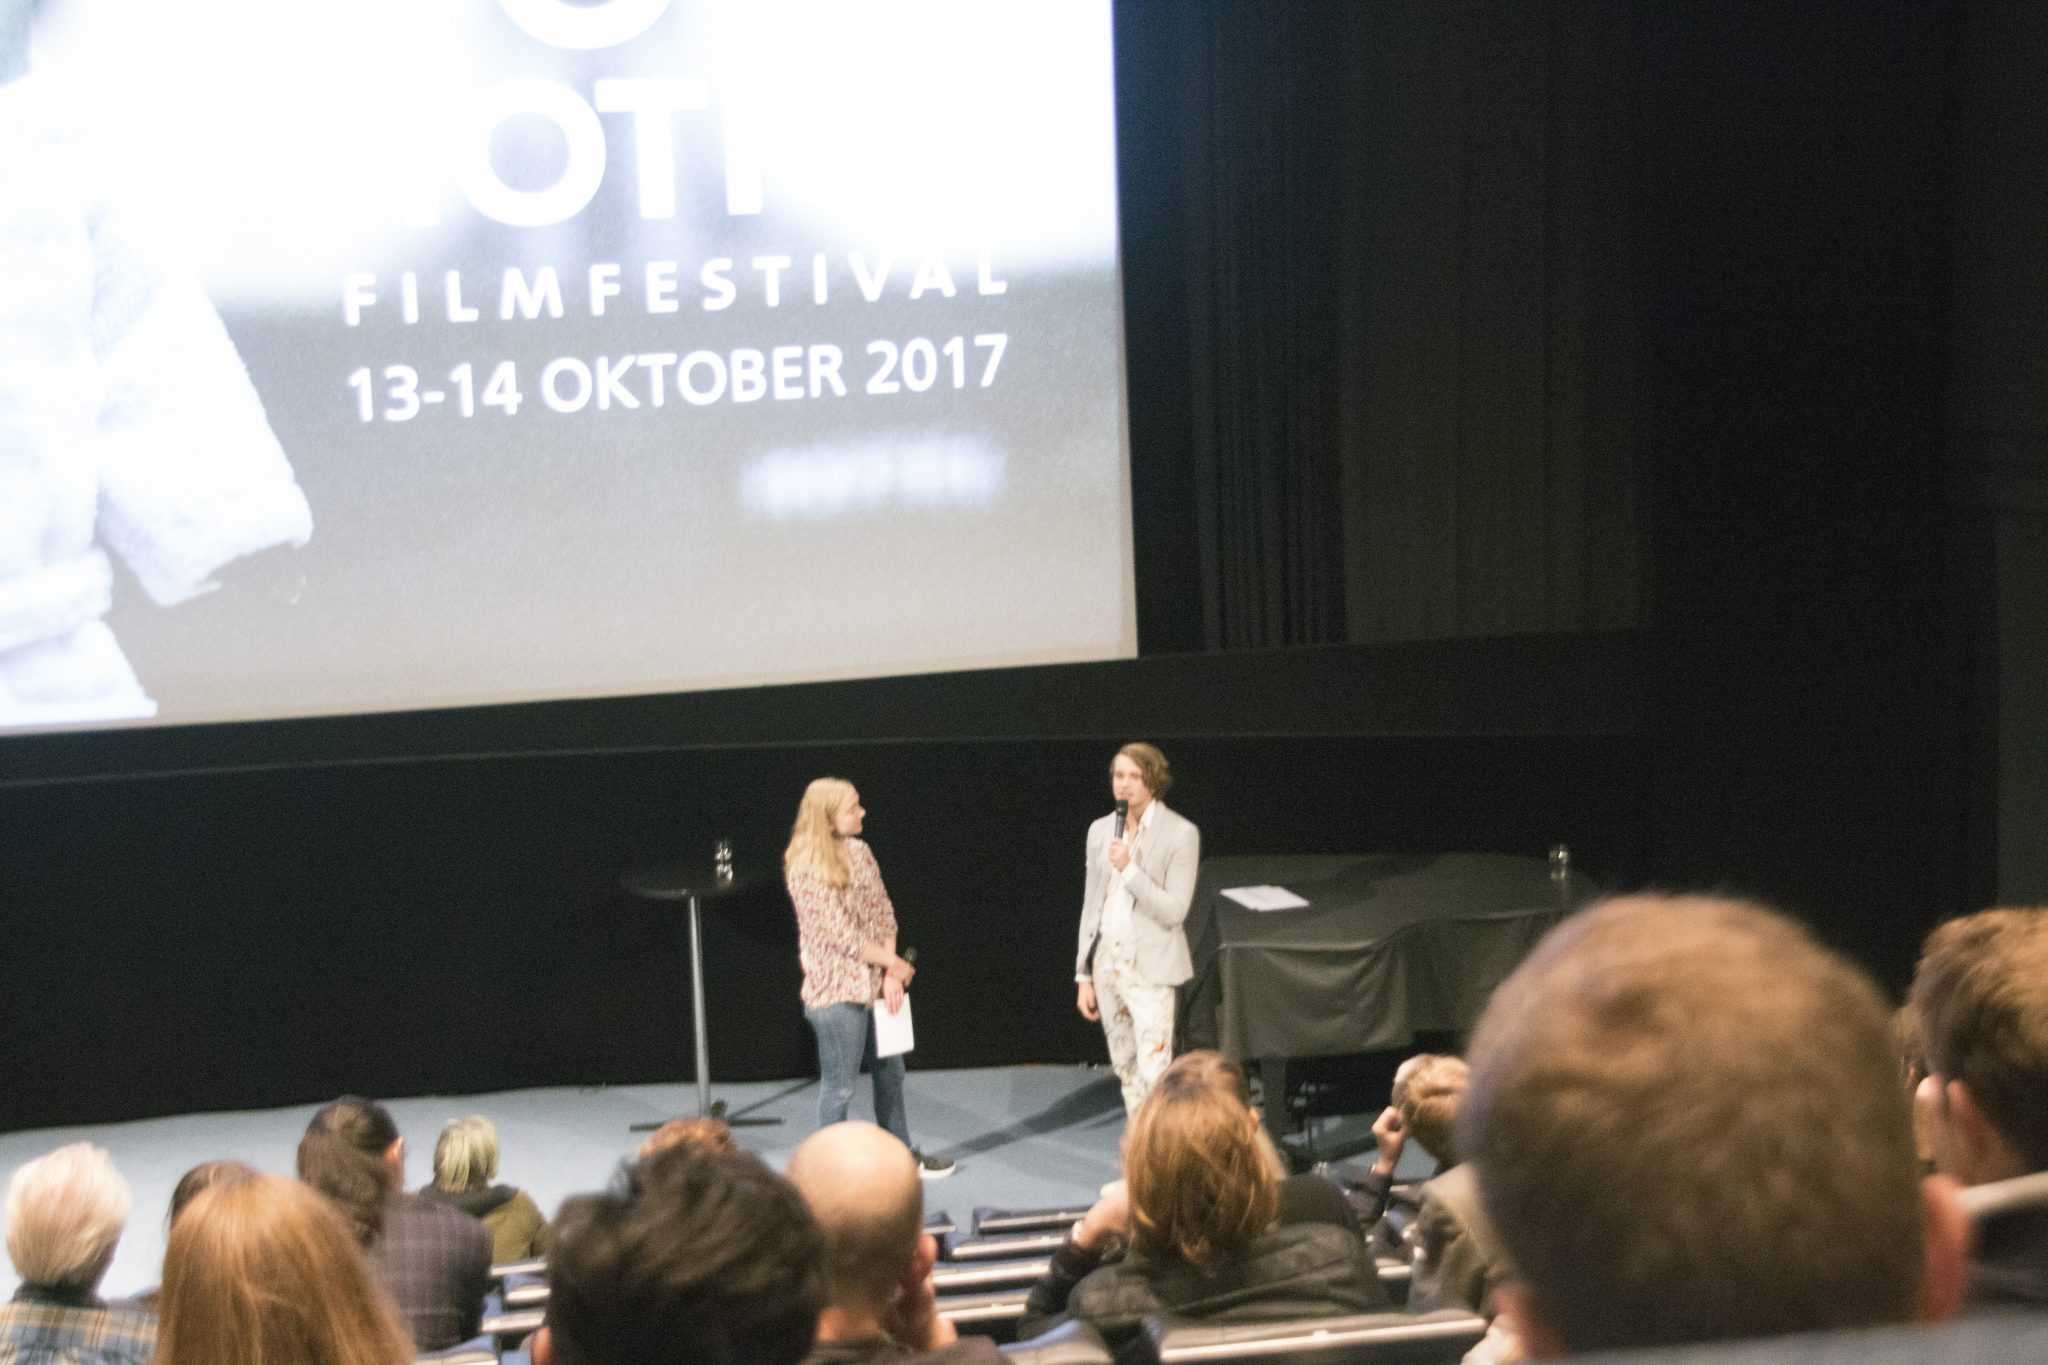 Stockmotion Filmfestival interview with Anton Forsdik